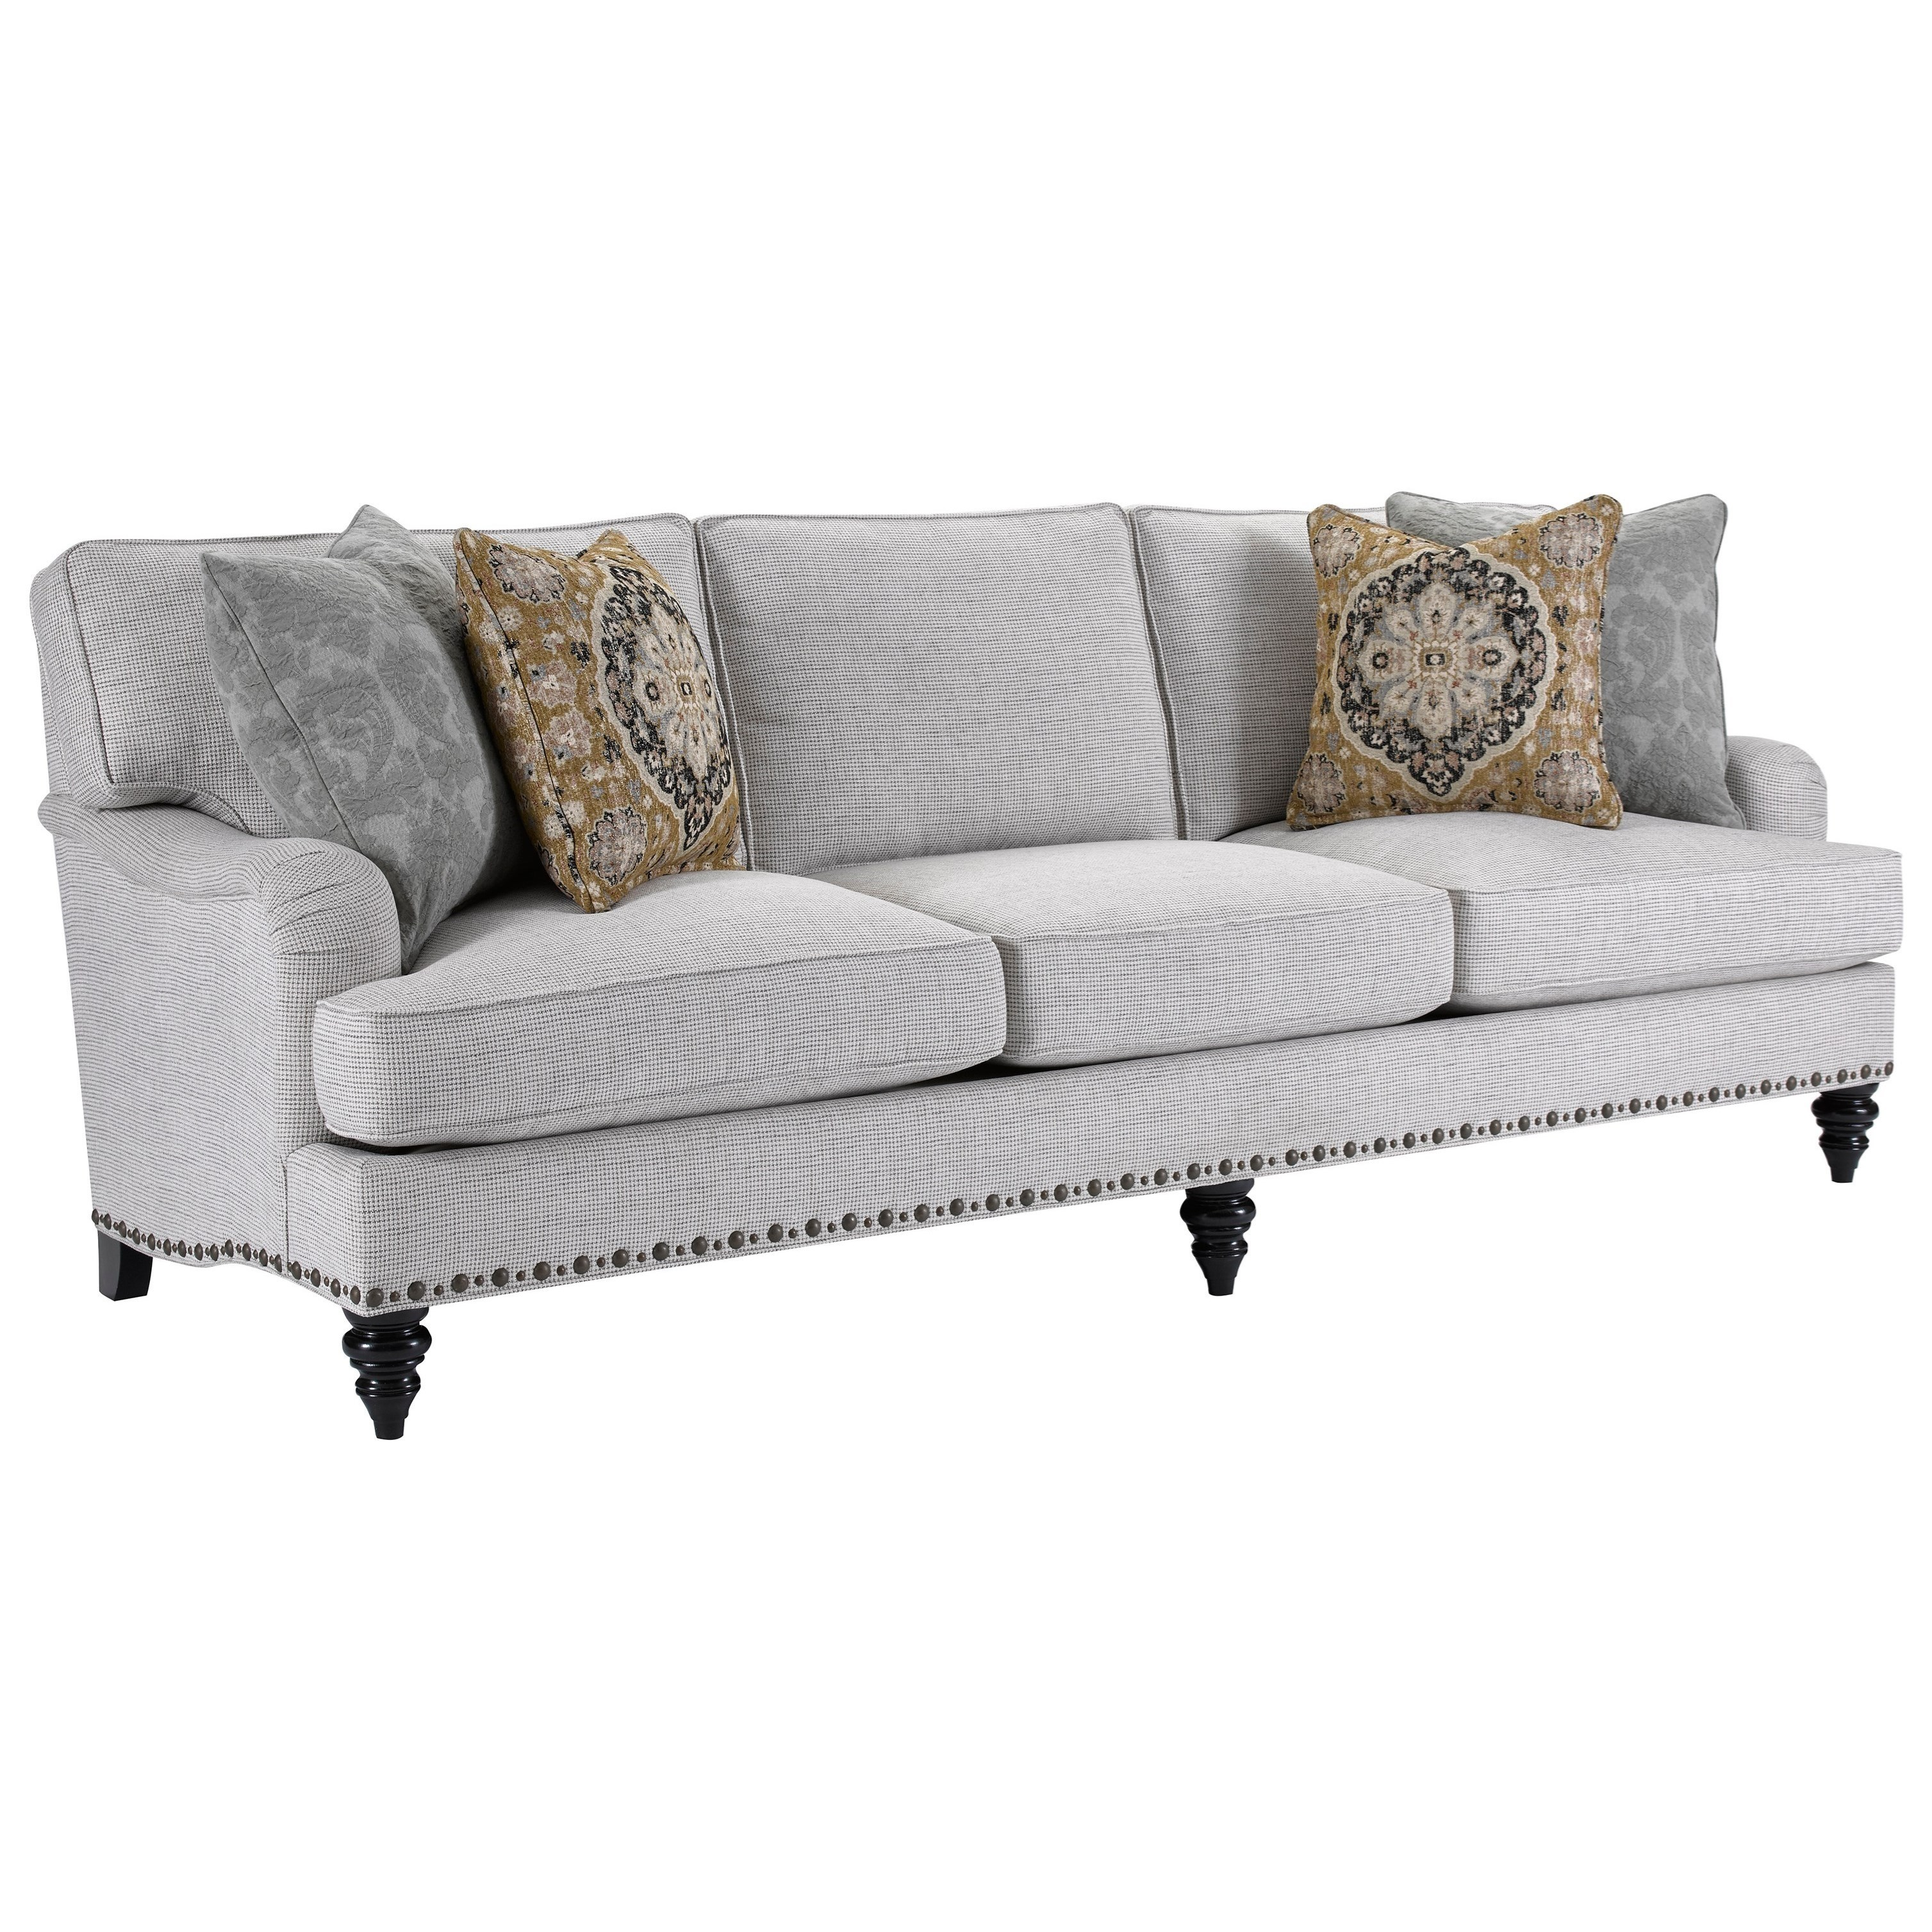 Broyhill Furniture Ester Sofa - Item Number: 4283-3-4695-08